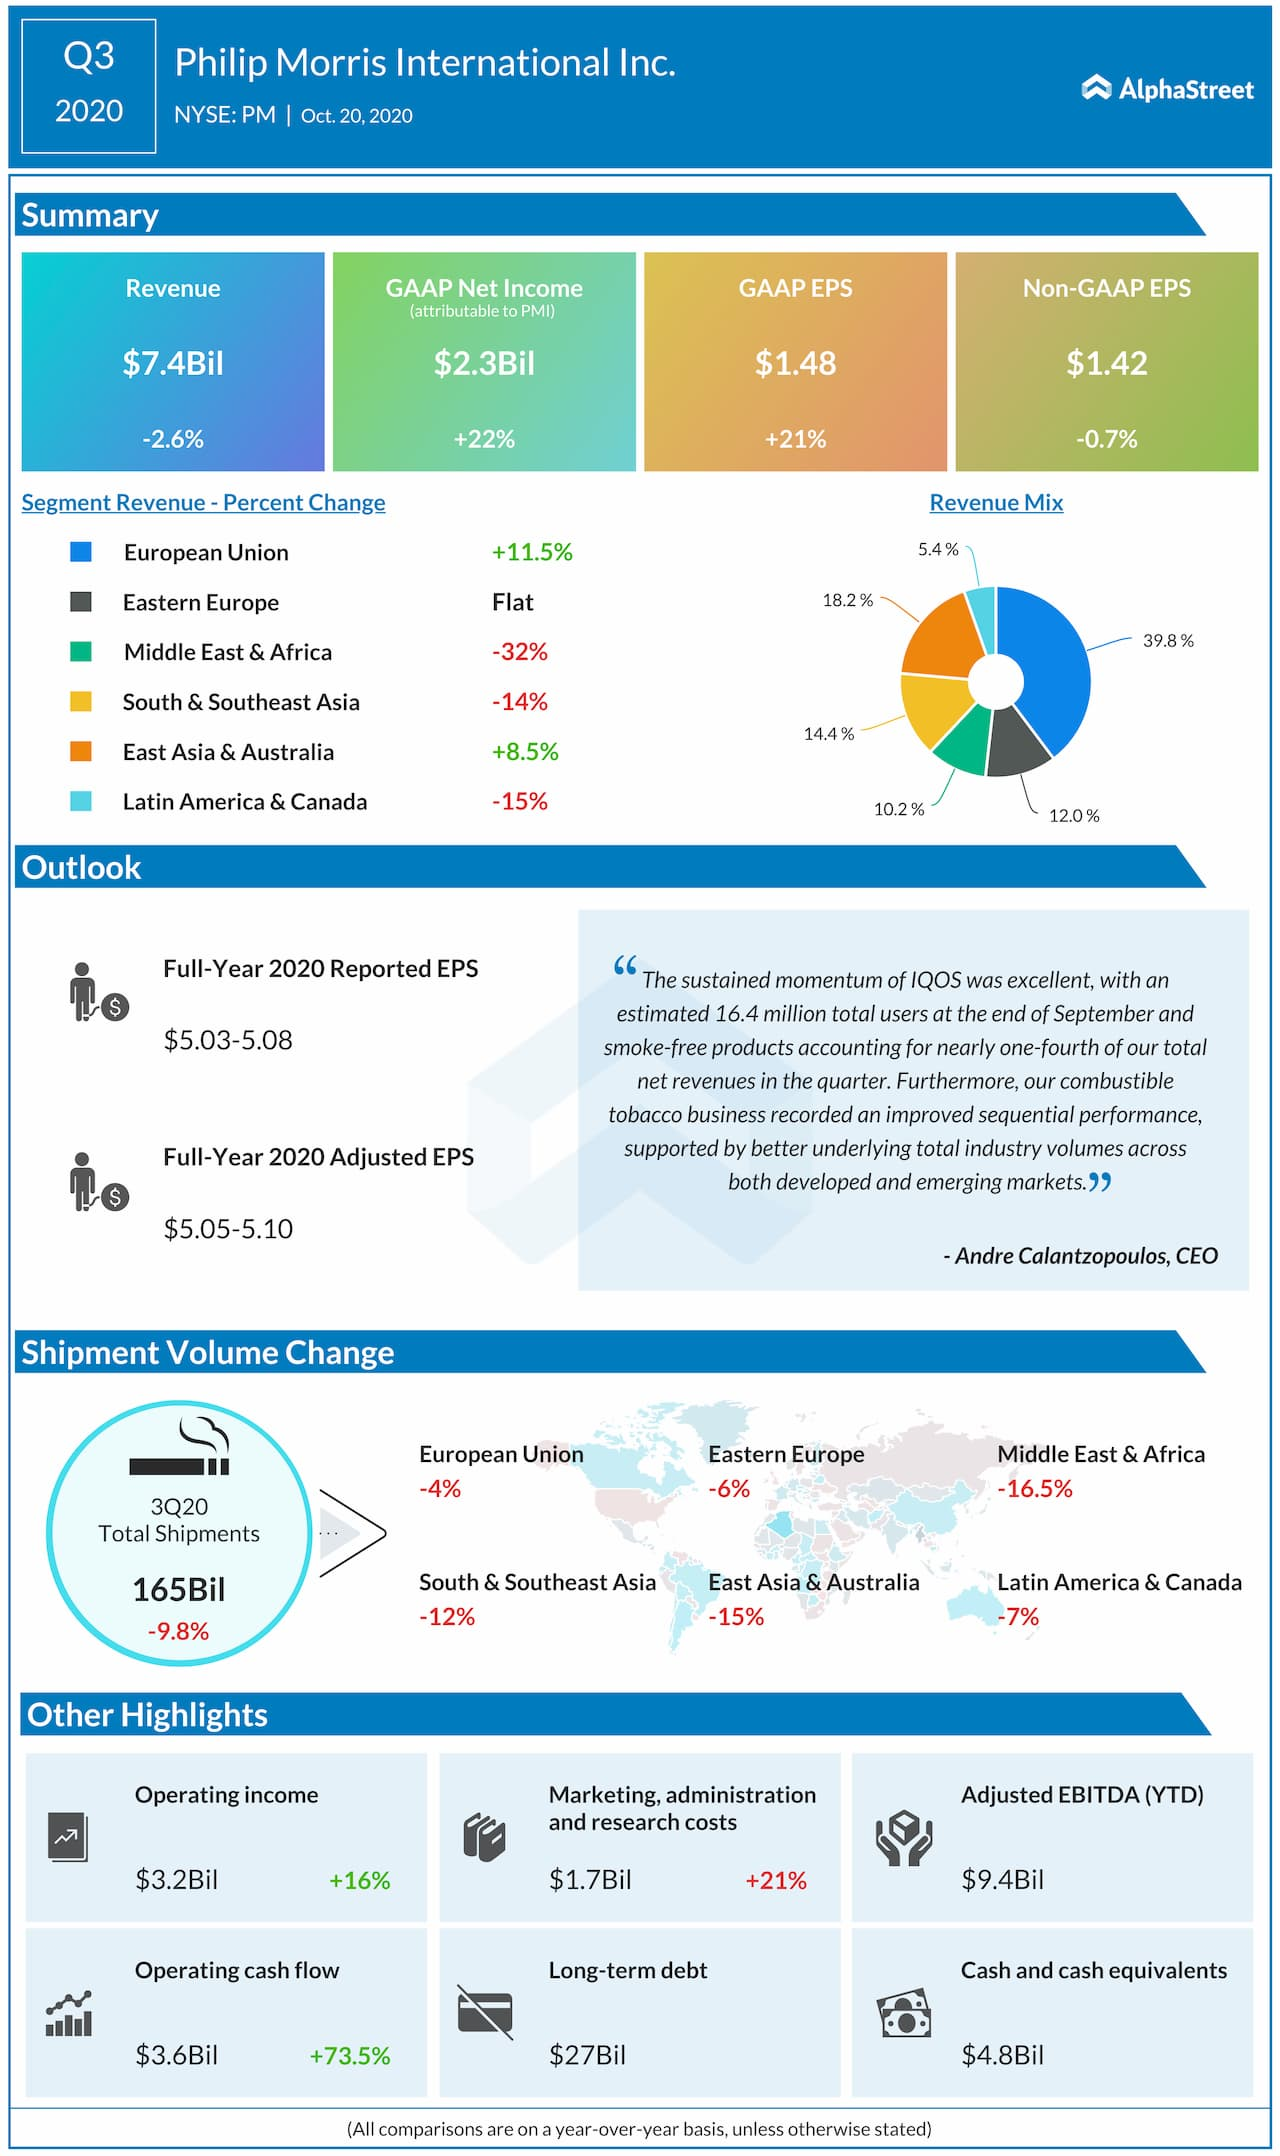 Philip Morris reports Q3 2020 earnings results